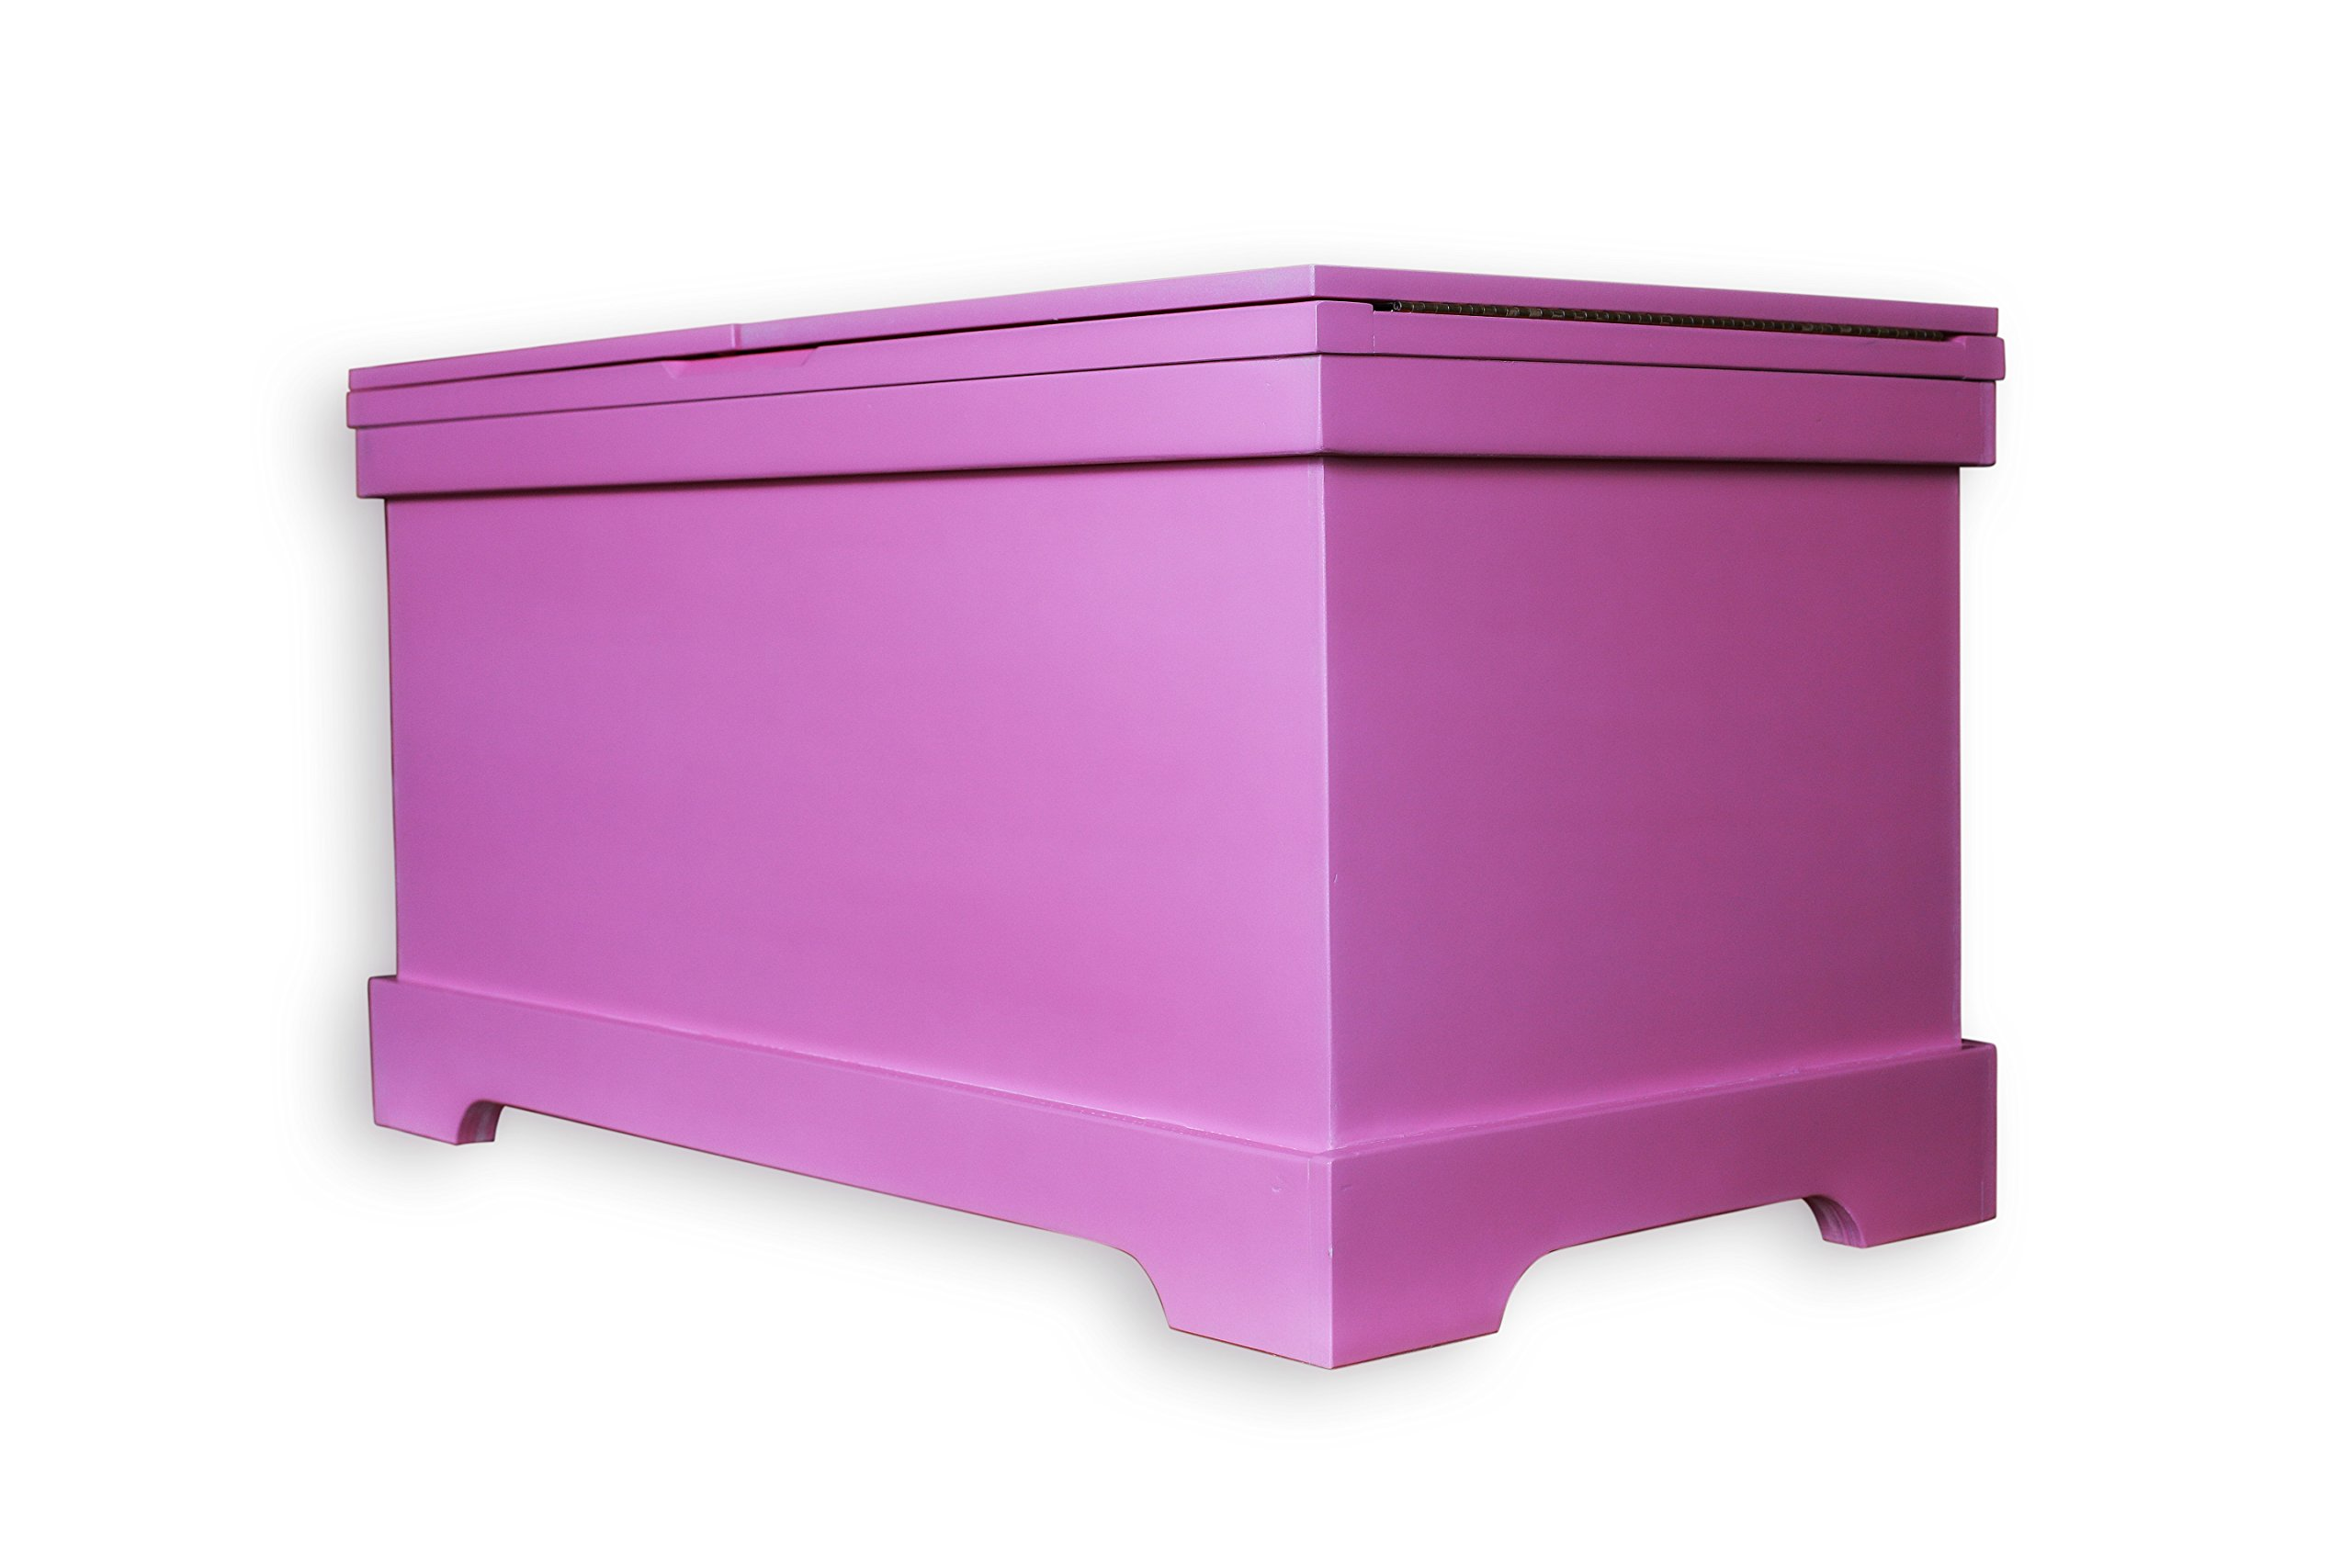 FireSkape The Baylee Window Seat Toy Box with Built in Right Hand Oriented Safety Ladder Compartment in Princess Pink